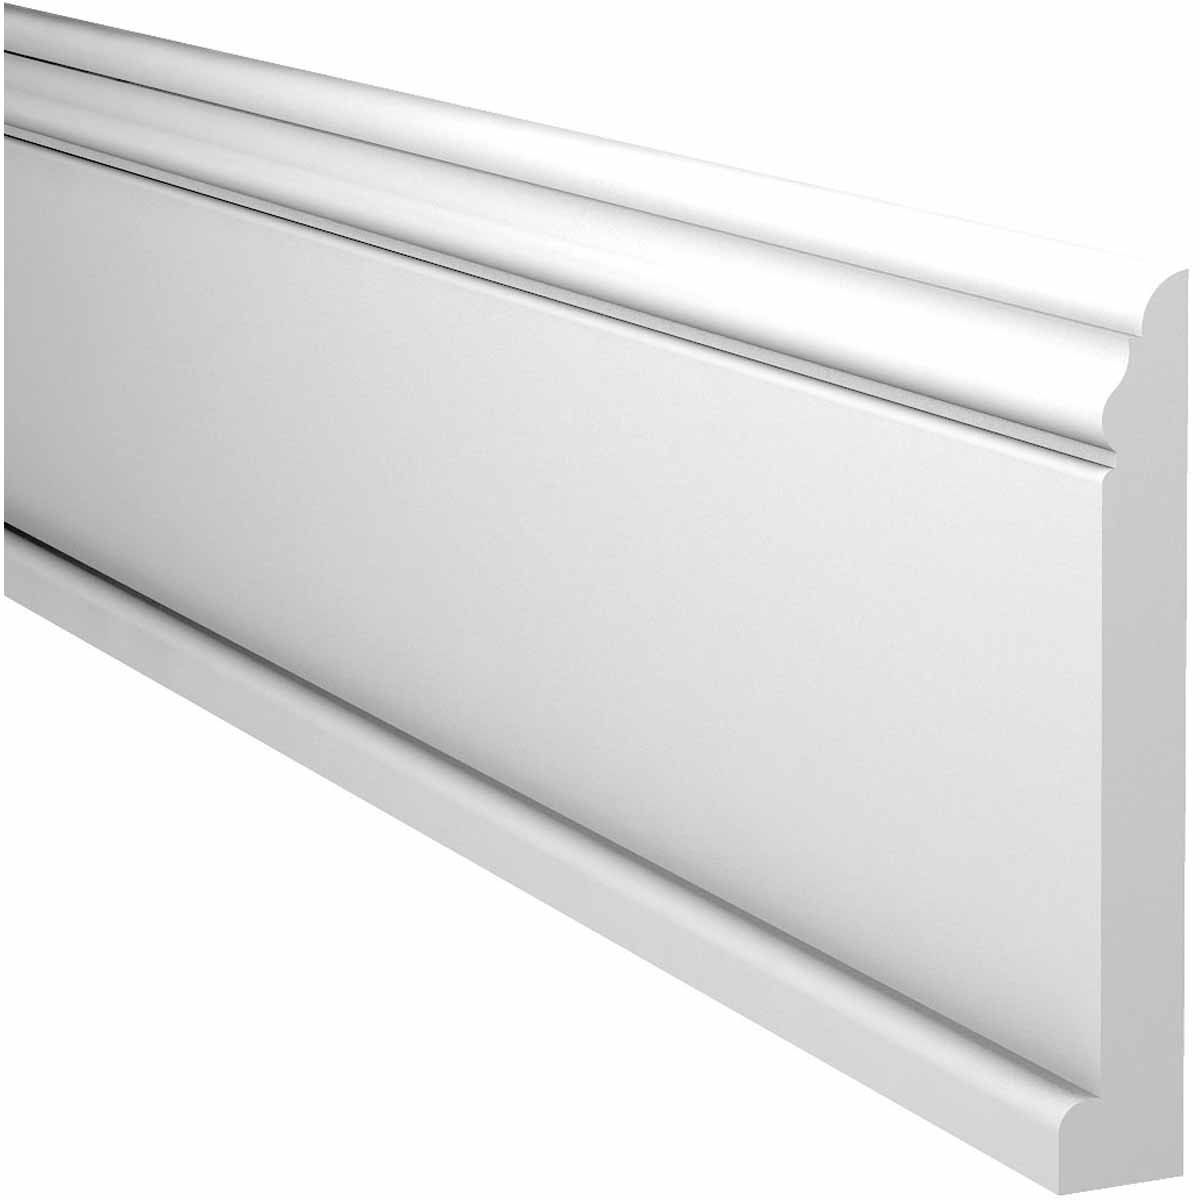 7 1 4 Inch H X 1 1 8 Inch P X 144 Inch L Baseboard Moulding